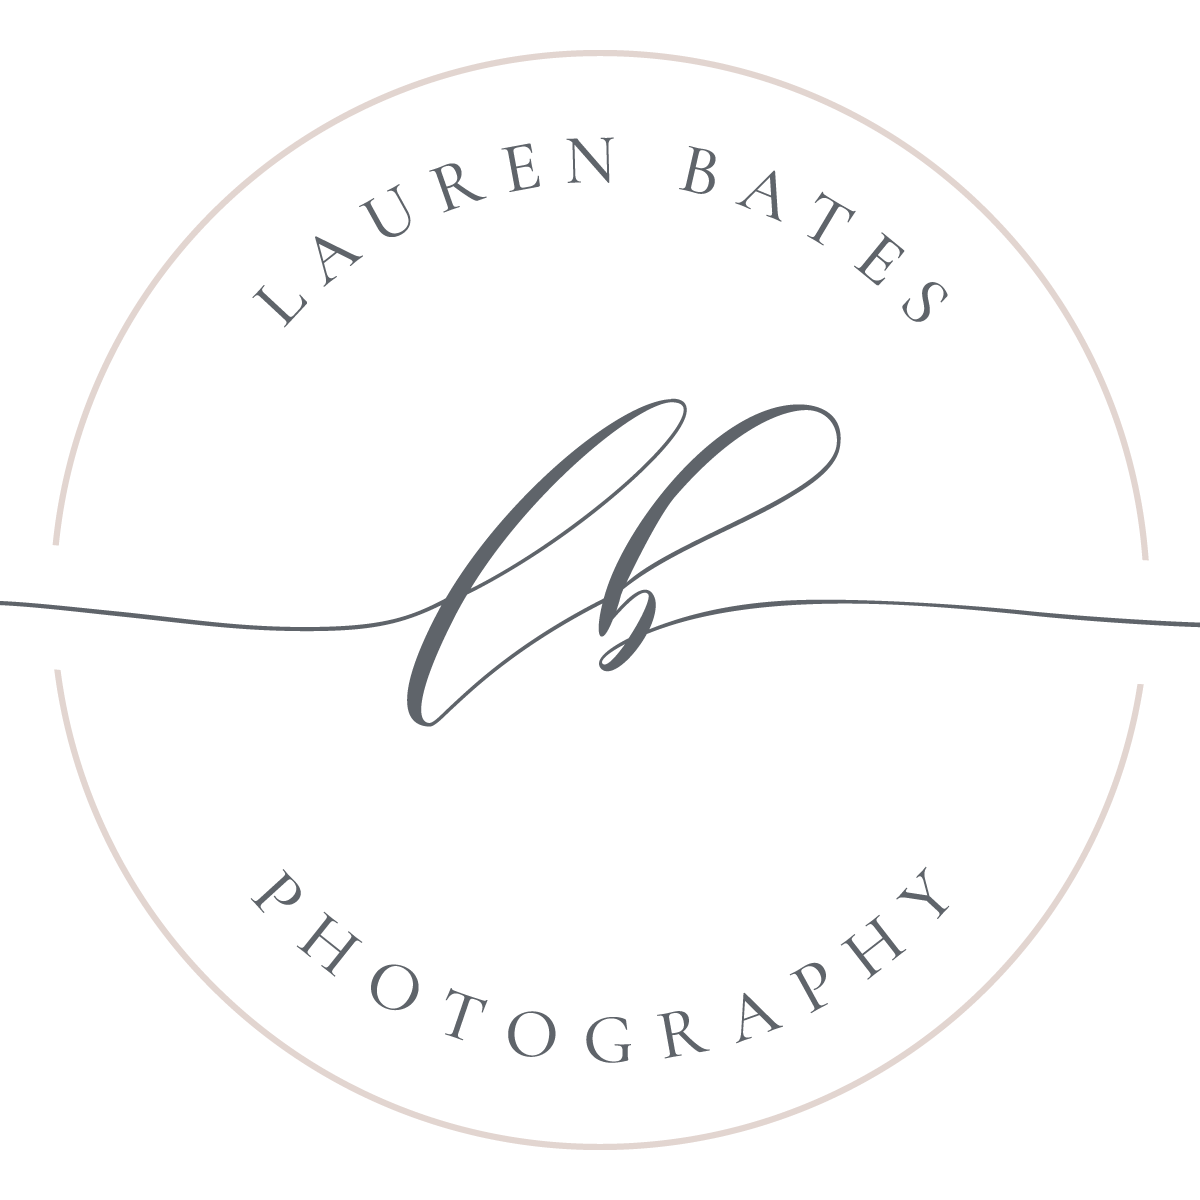 Lauren Bates Photography Destination Wedding Photographer based in Central Florida